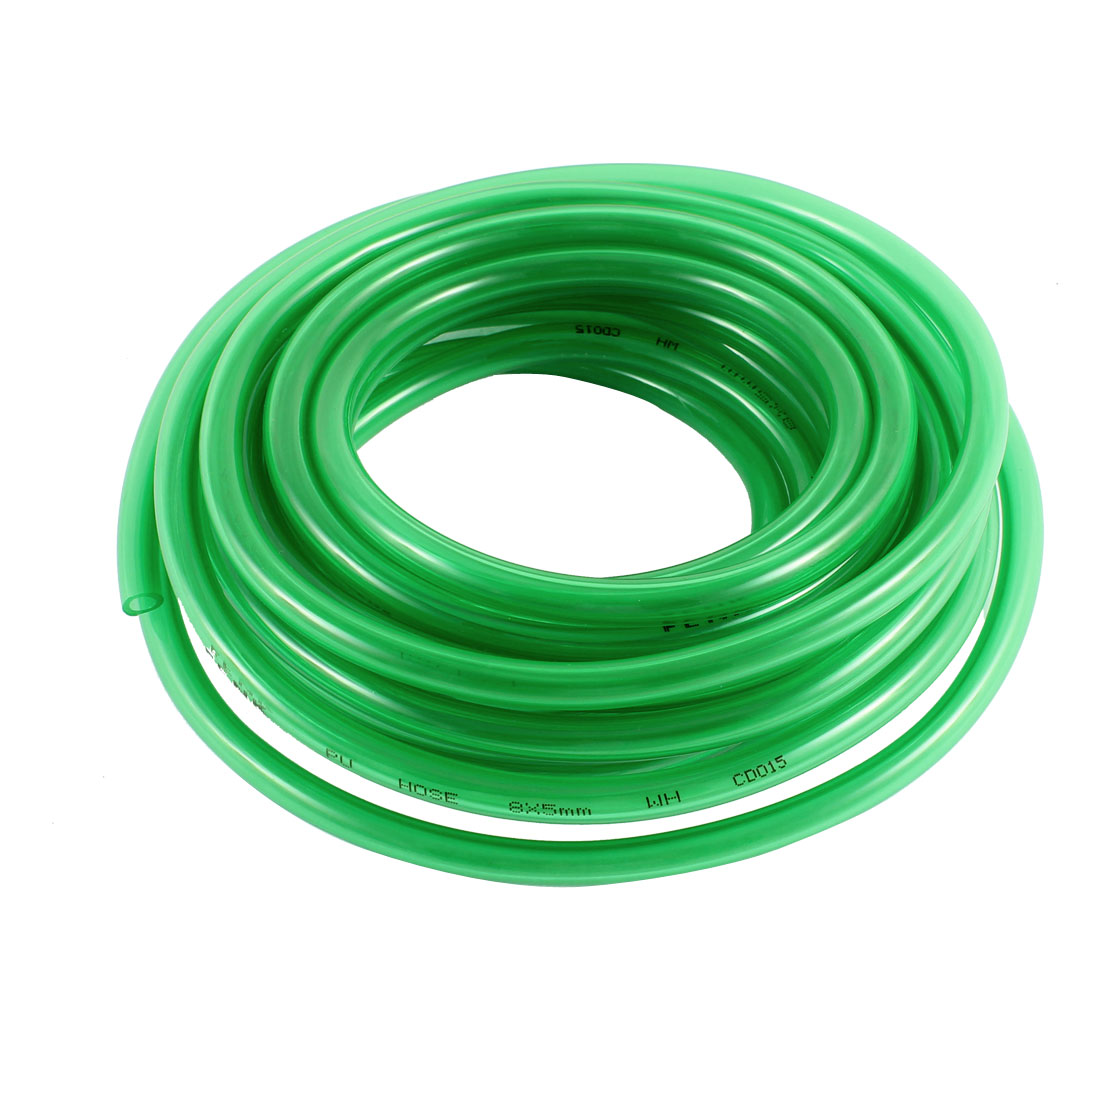 5mm x 8mm 6 Meters Long Air Pneumatic Polyurethane Tube PU Hose Pipe Green